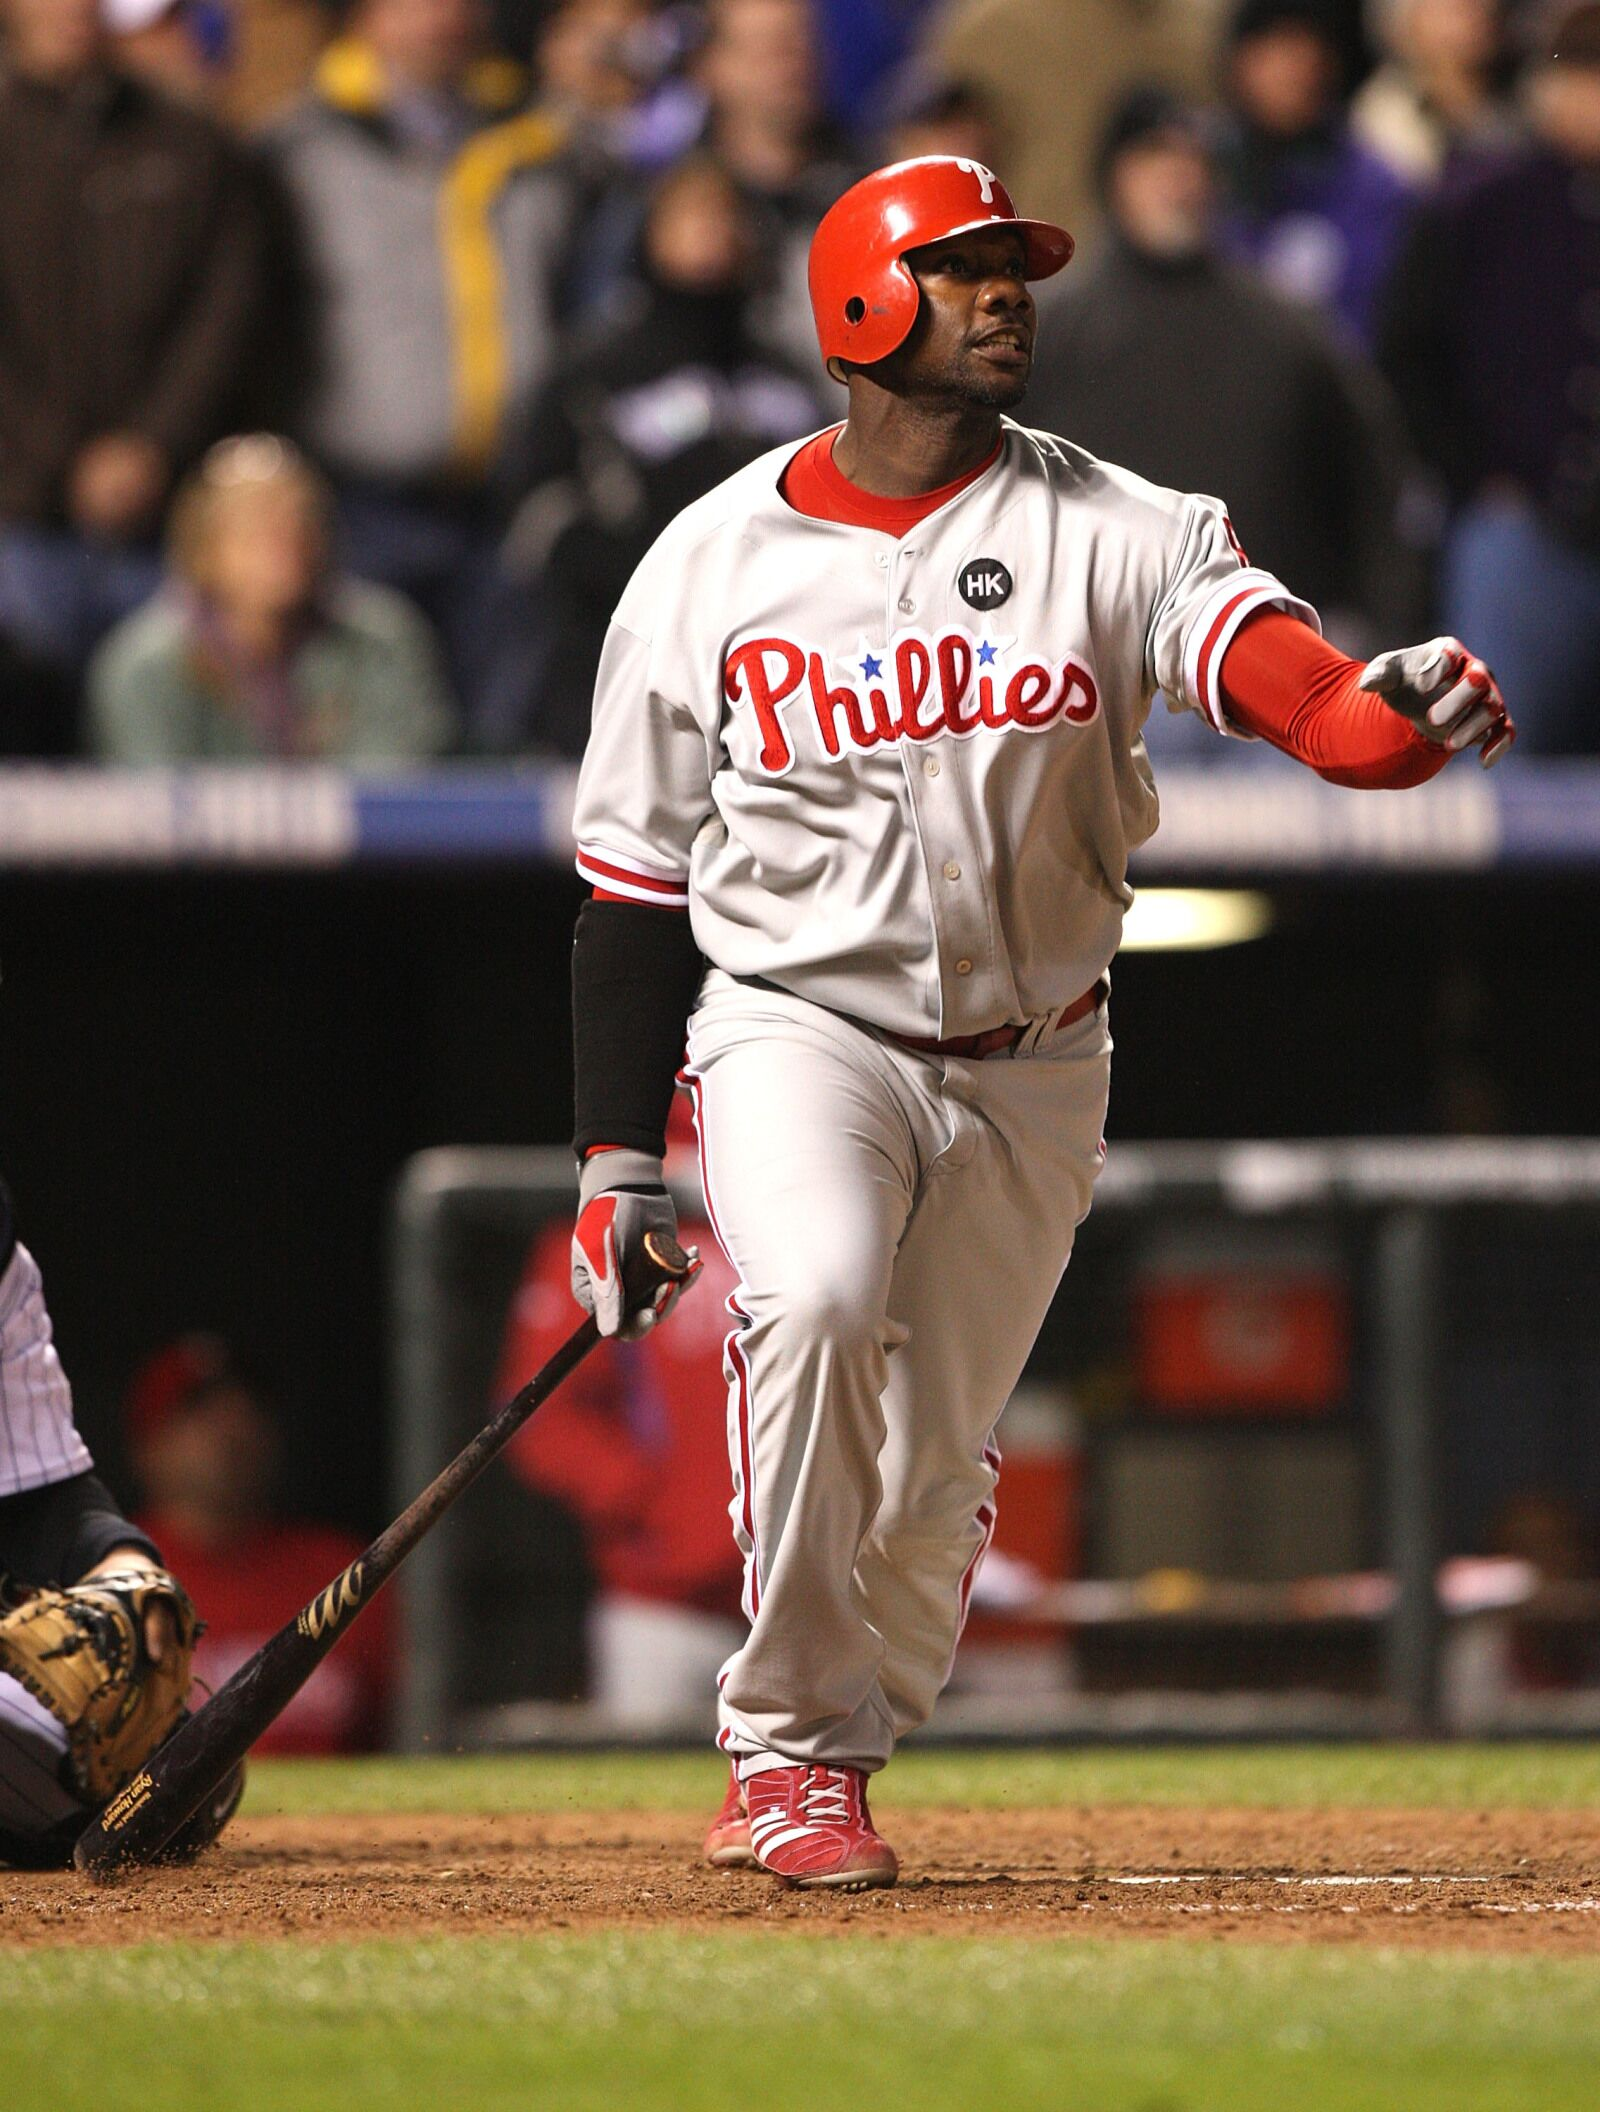 Phillies: Ryan Howard's Clutchest Moment, 10 Years Ago Today